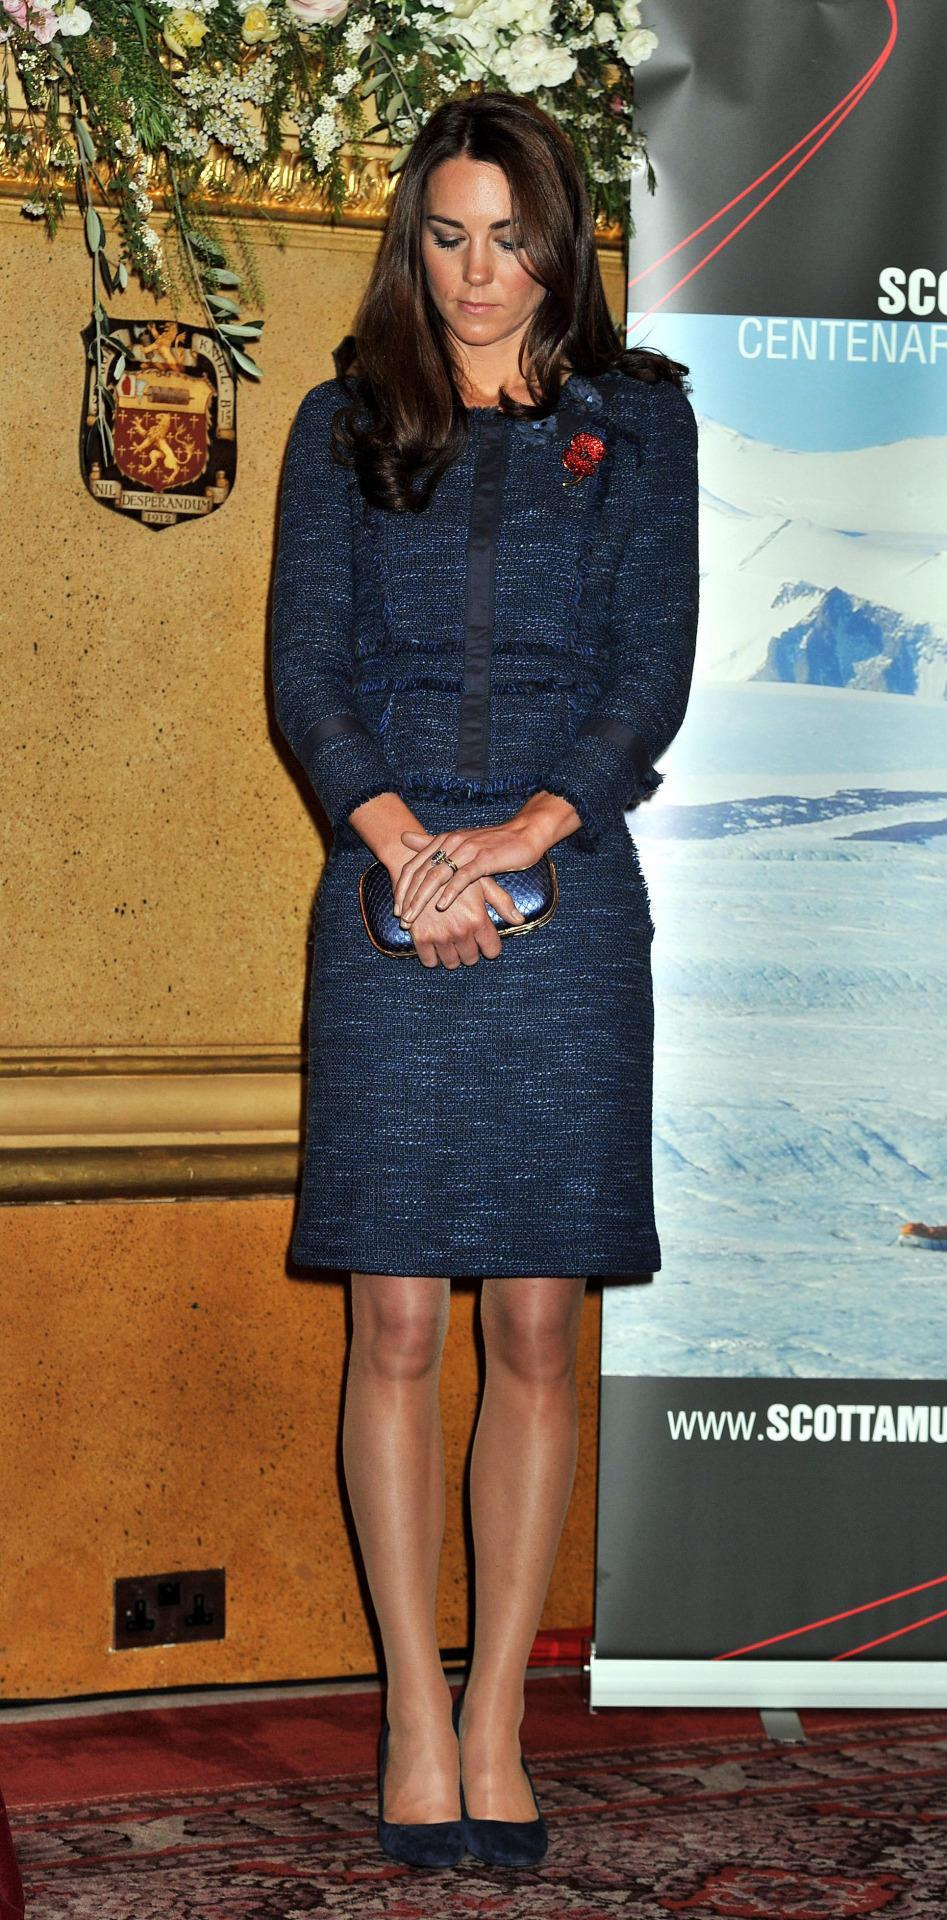 <p>For a London reception, Kate chose a navy tweed jacket and skirt by Rebecca Taylor. She accessorised with blue Prada pumps and a shiny Anya Hindmarch clutch. </p><p><i>[Photo: PA]</i></p>